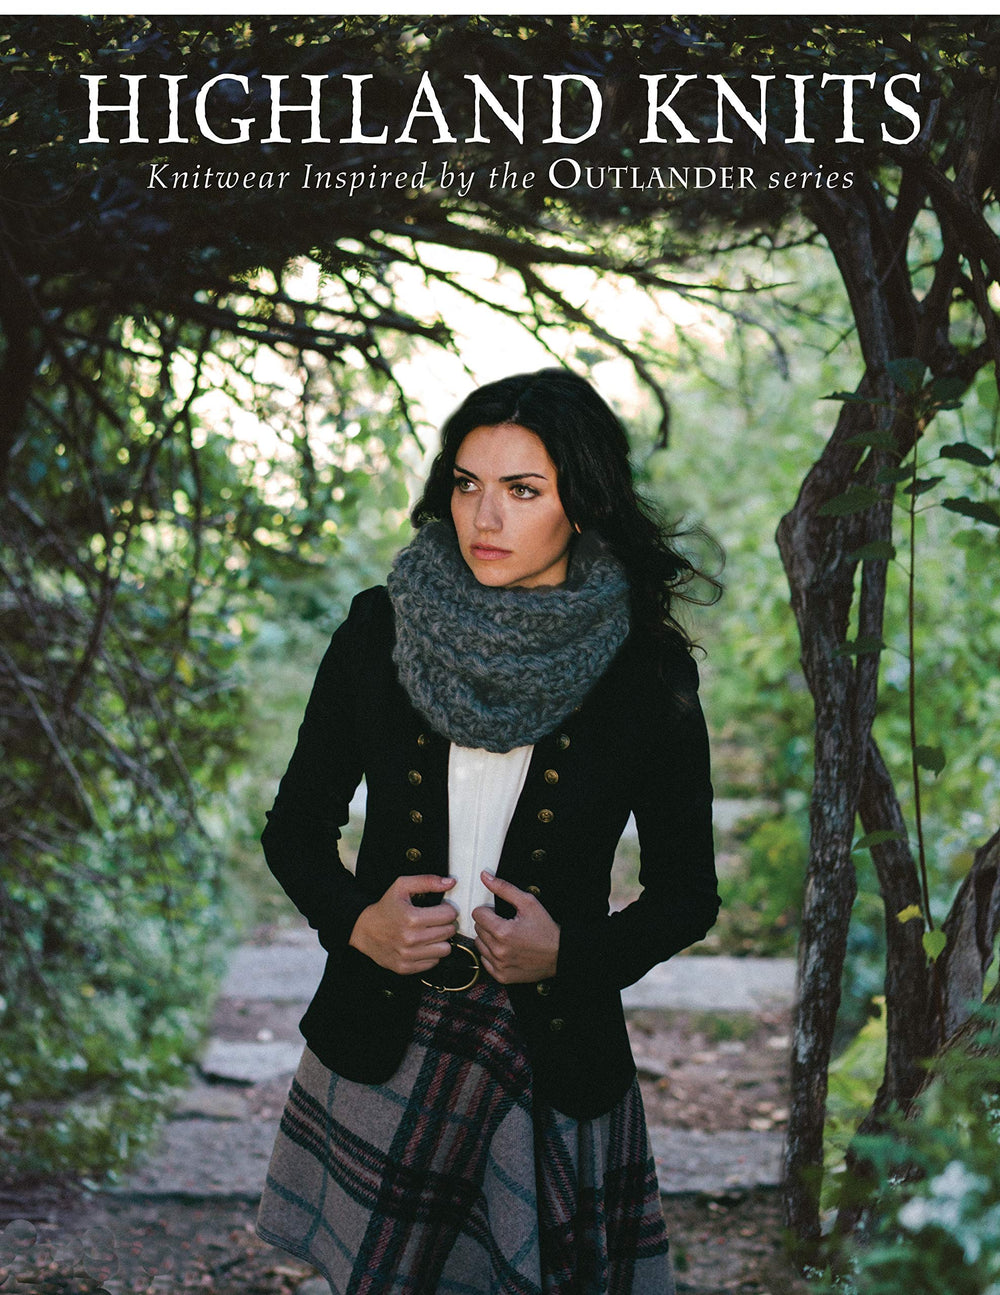 Highland Knits: Knitwear Inspired by the Outlander Series